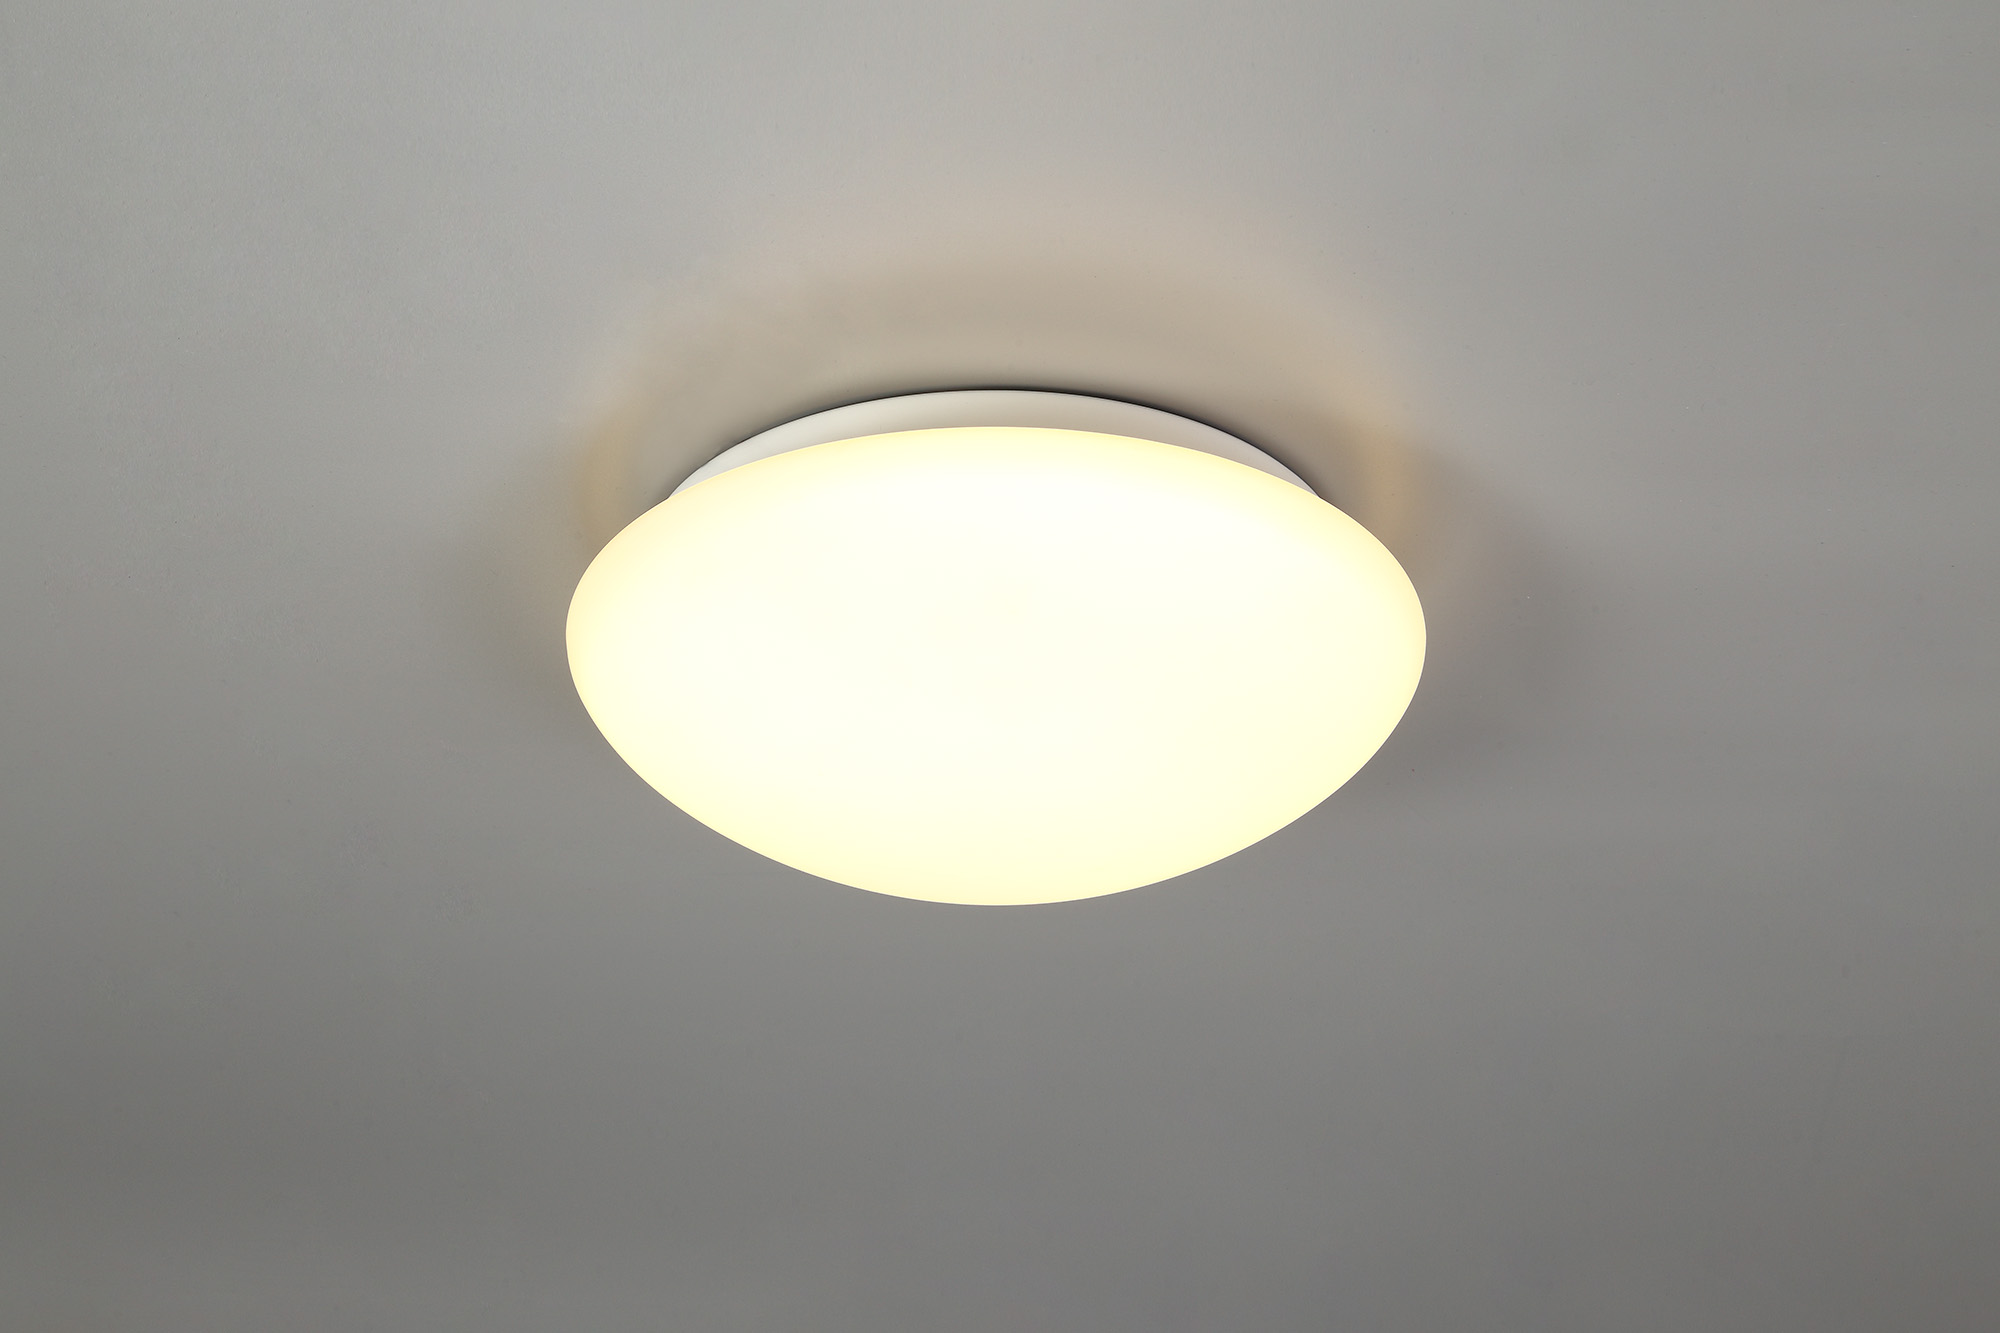 Ceiling, 1 x 18W LED, 3000K, 872lm, IP44, White/Frosted Glass, 3yrs Warranty